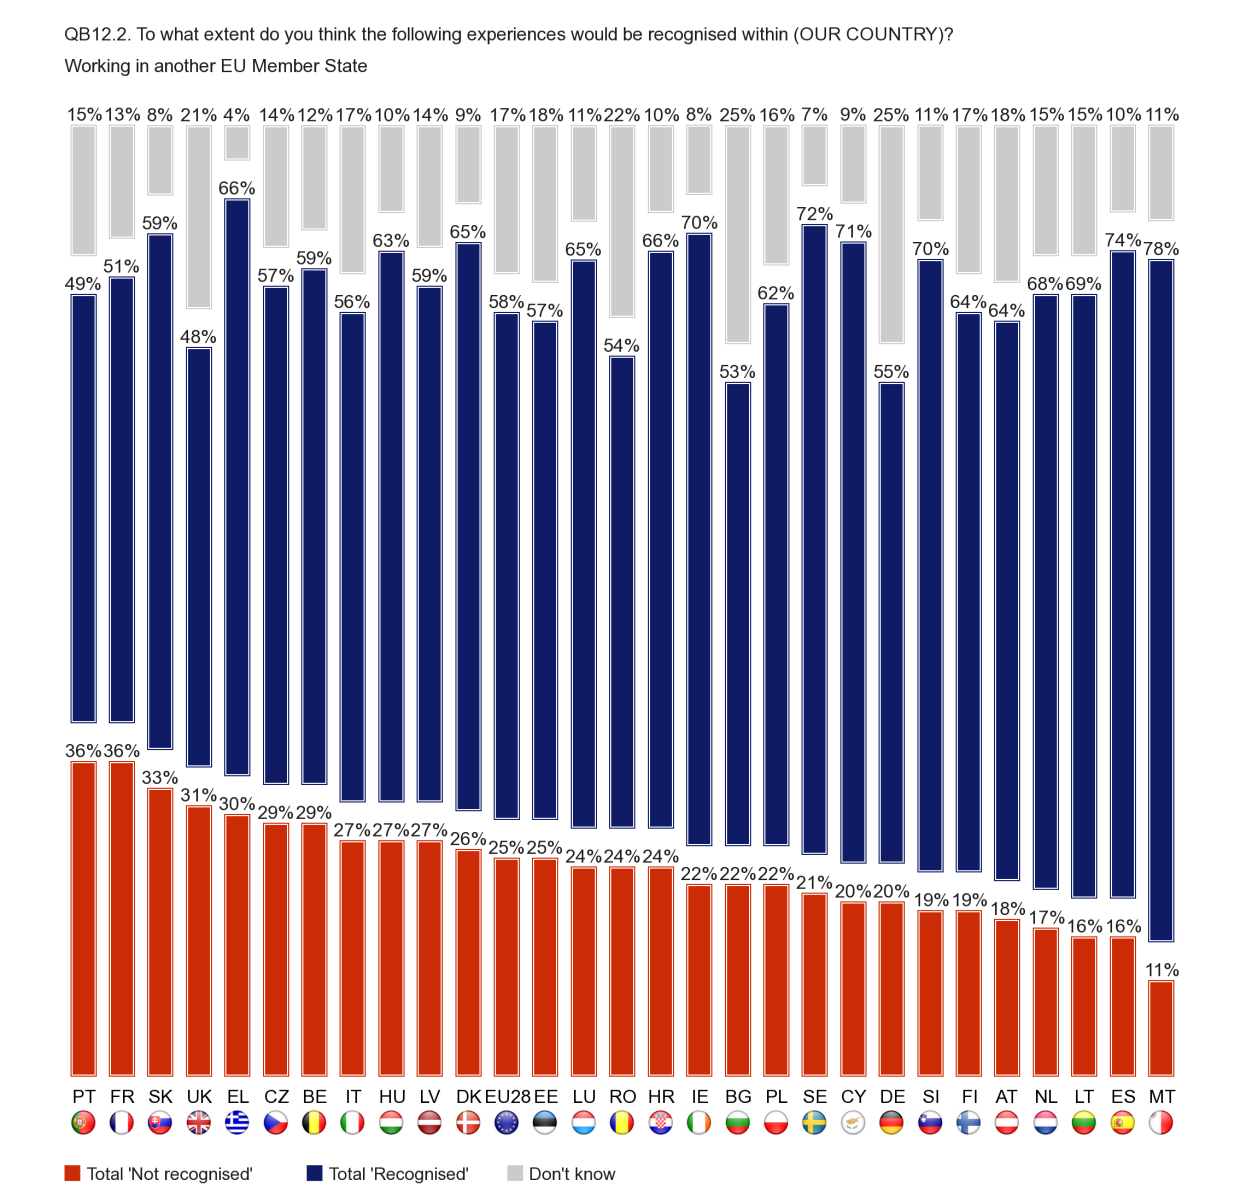 In relation to working in another EU Member State, the findings across individual Member States are broadly similar to those seen above in relation to studying.